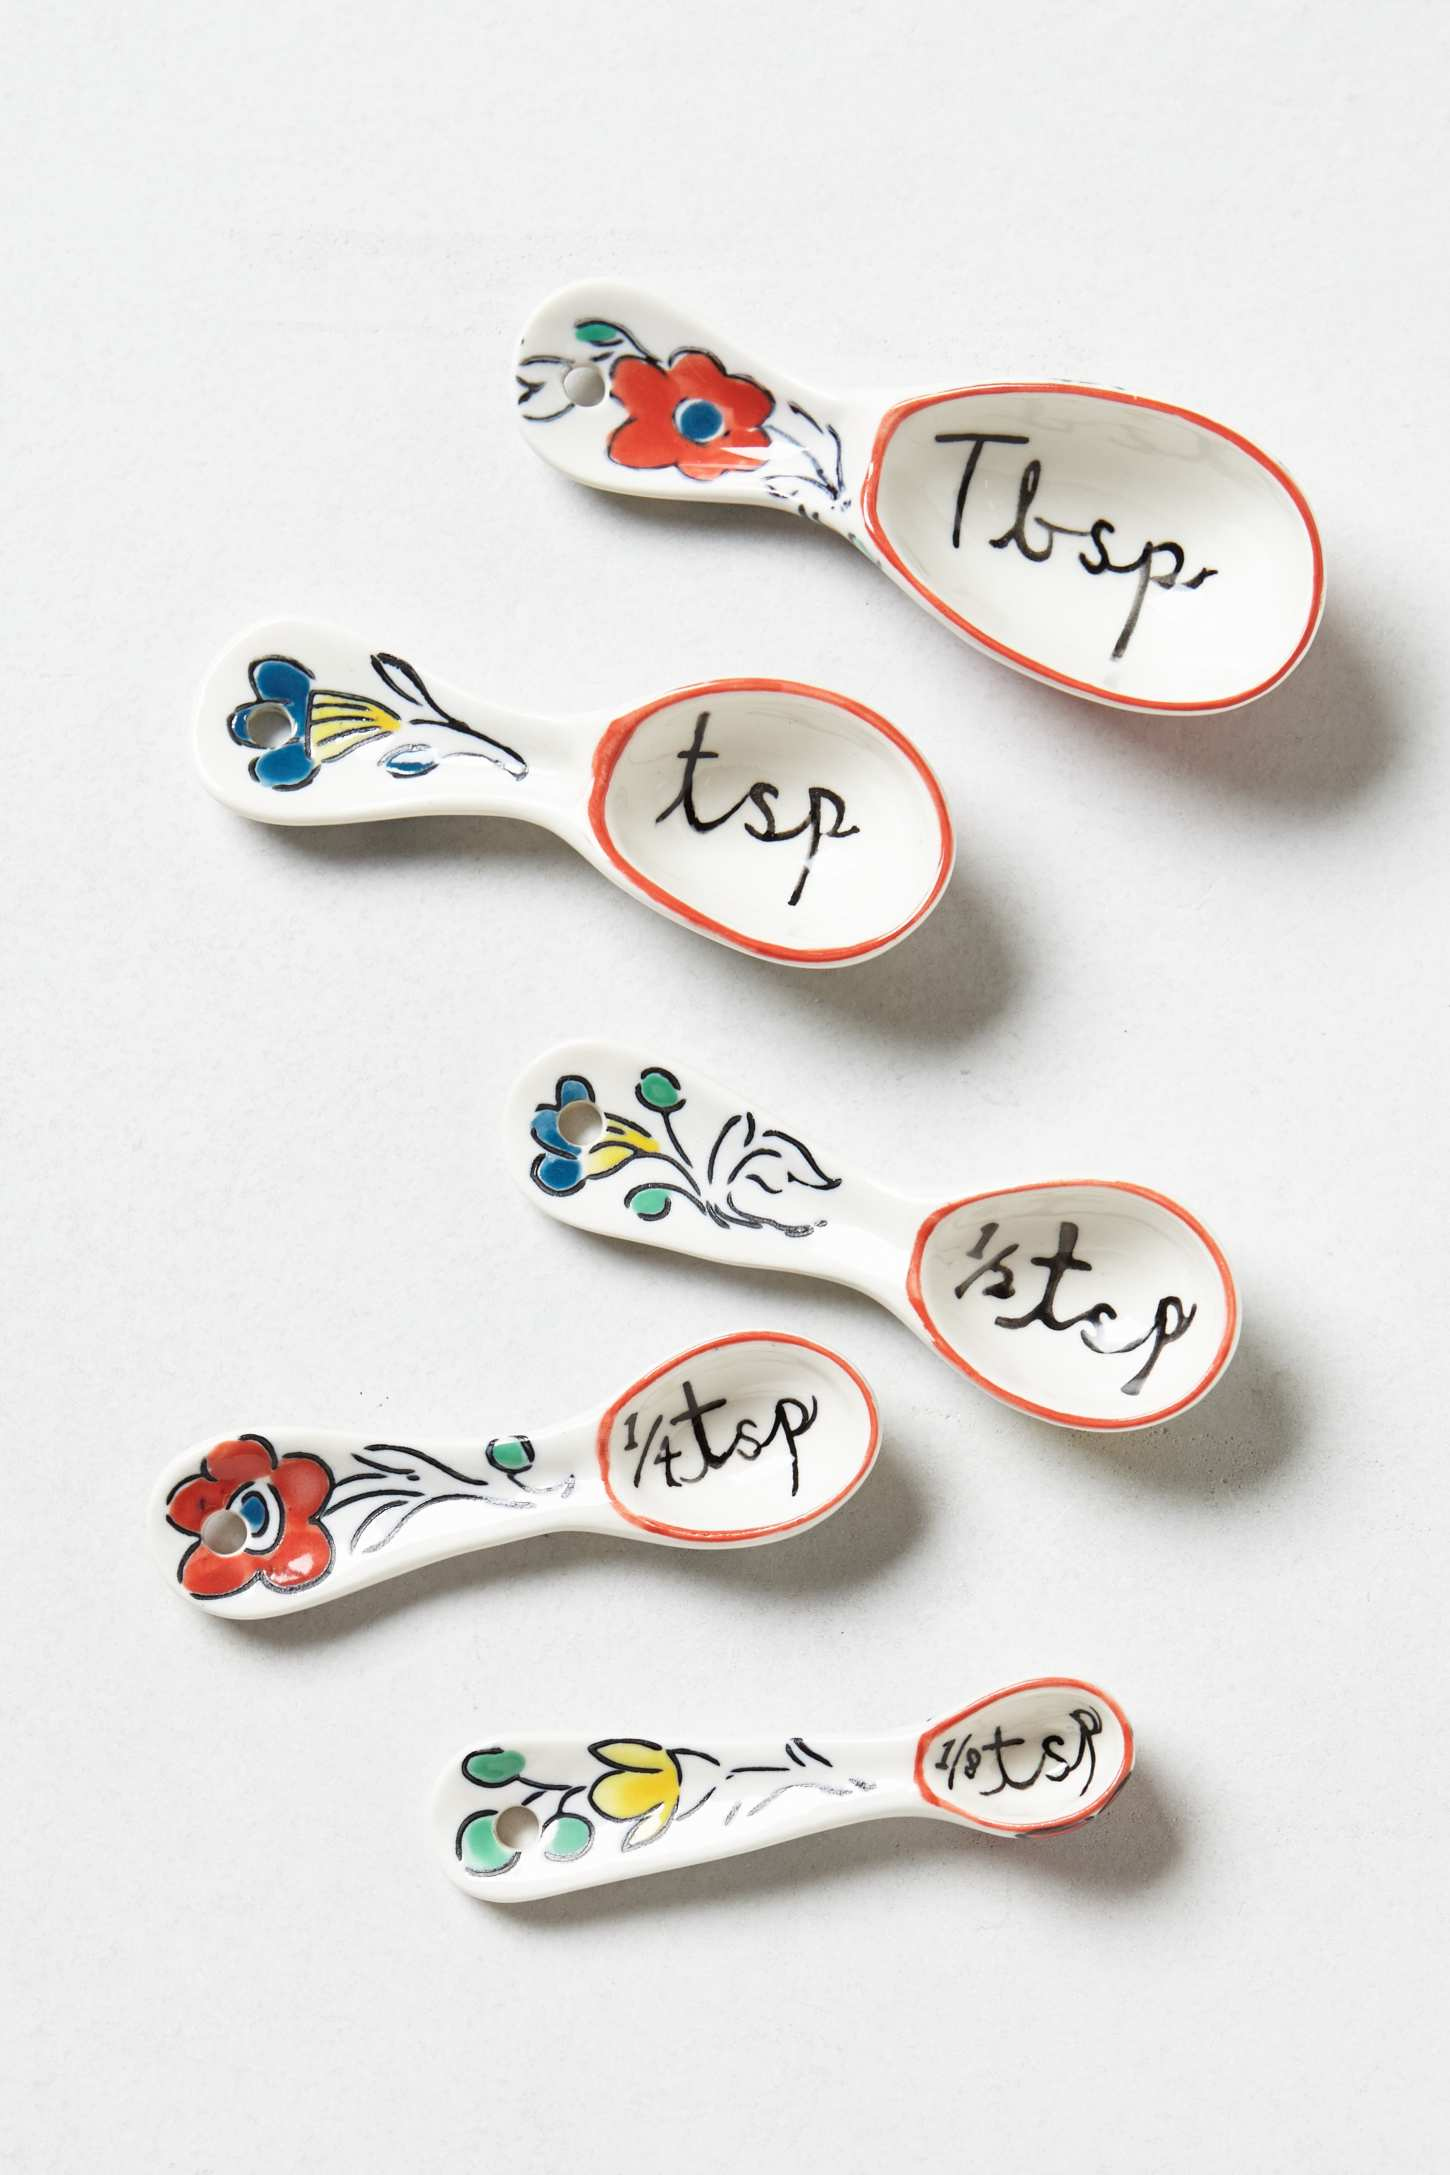 anthro Flowerpatch Measuring Spoons